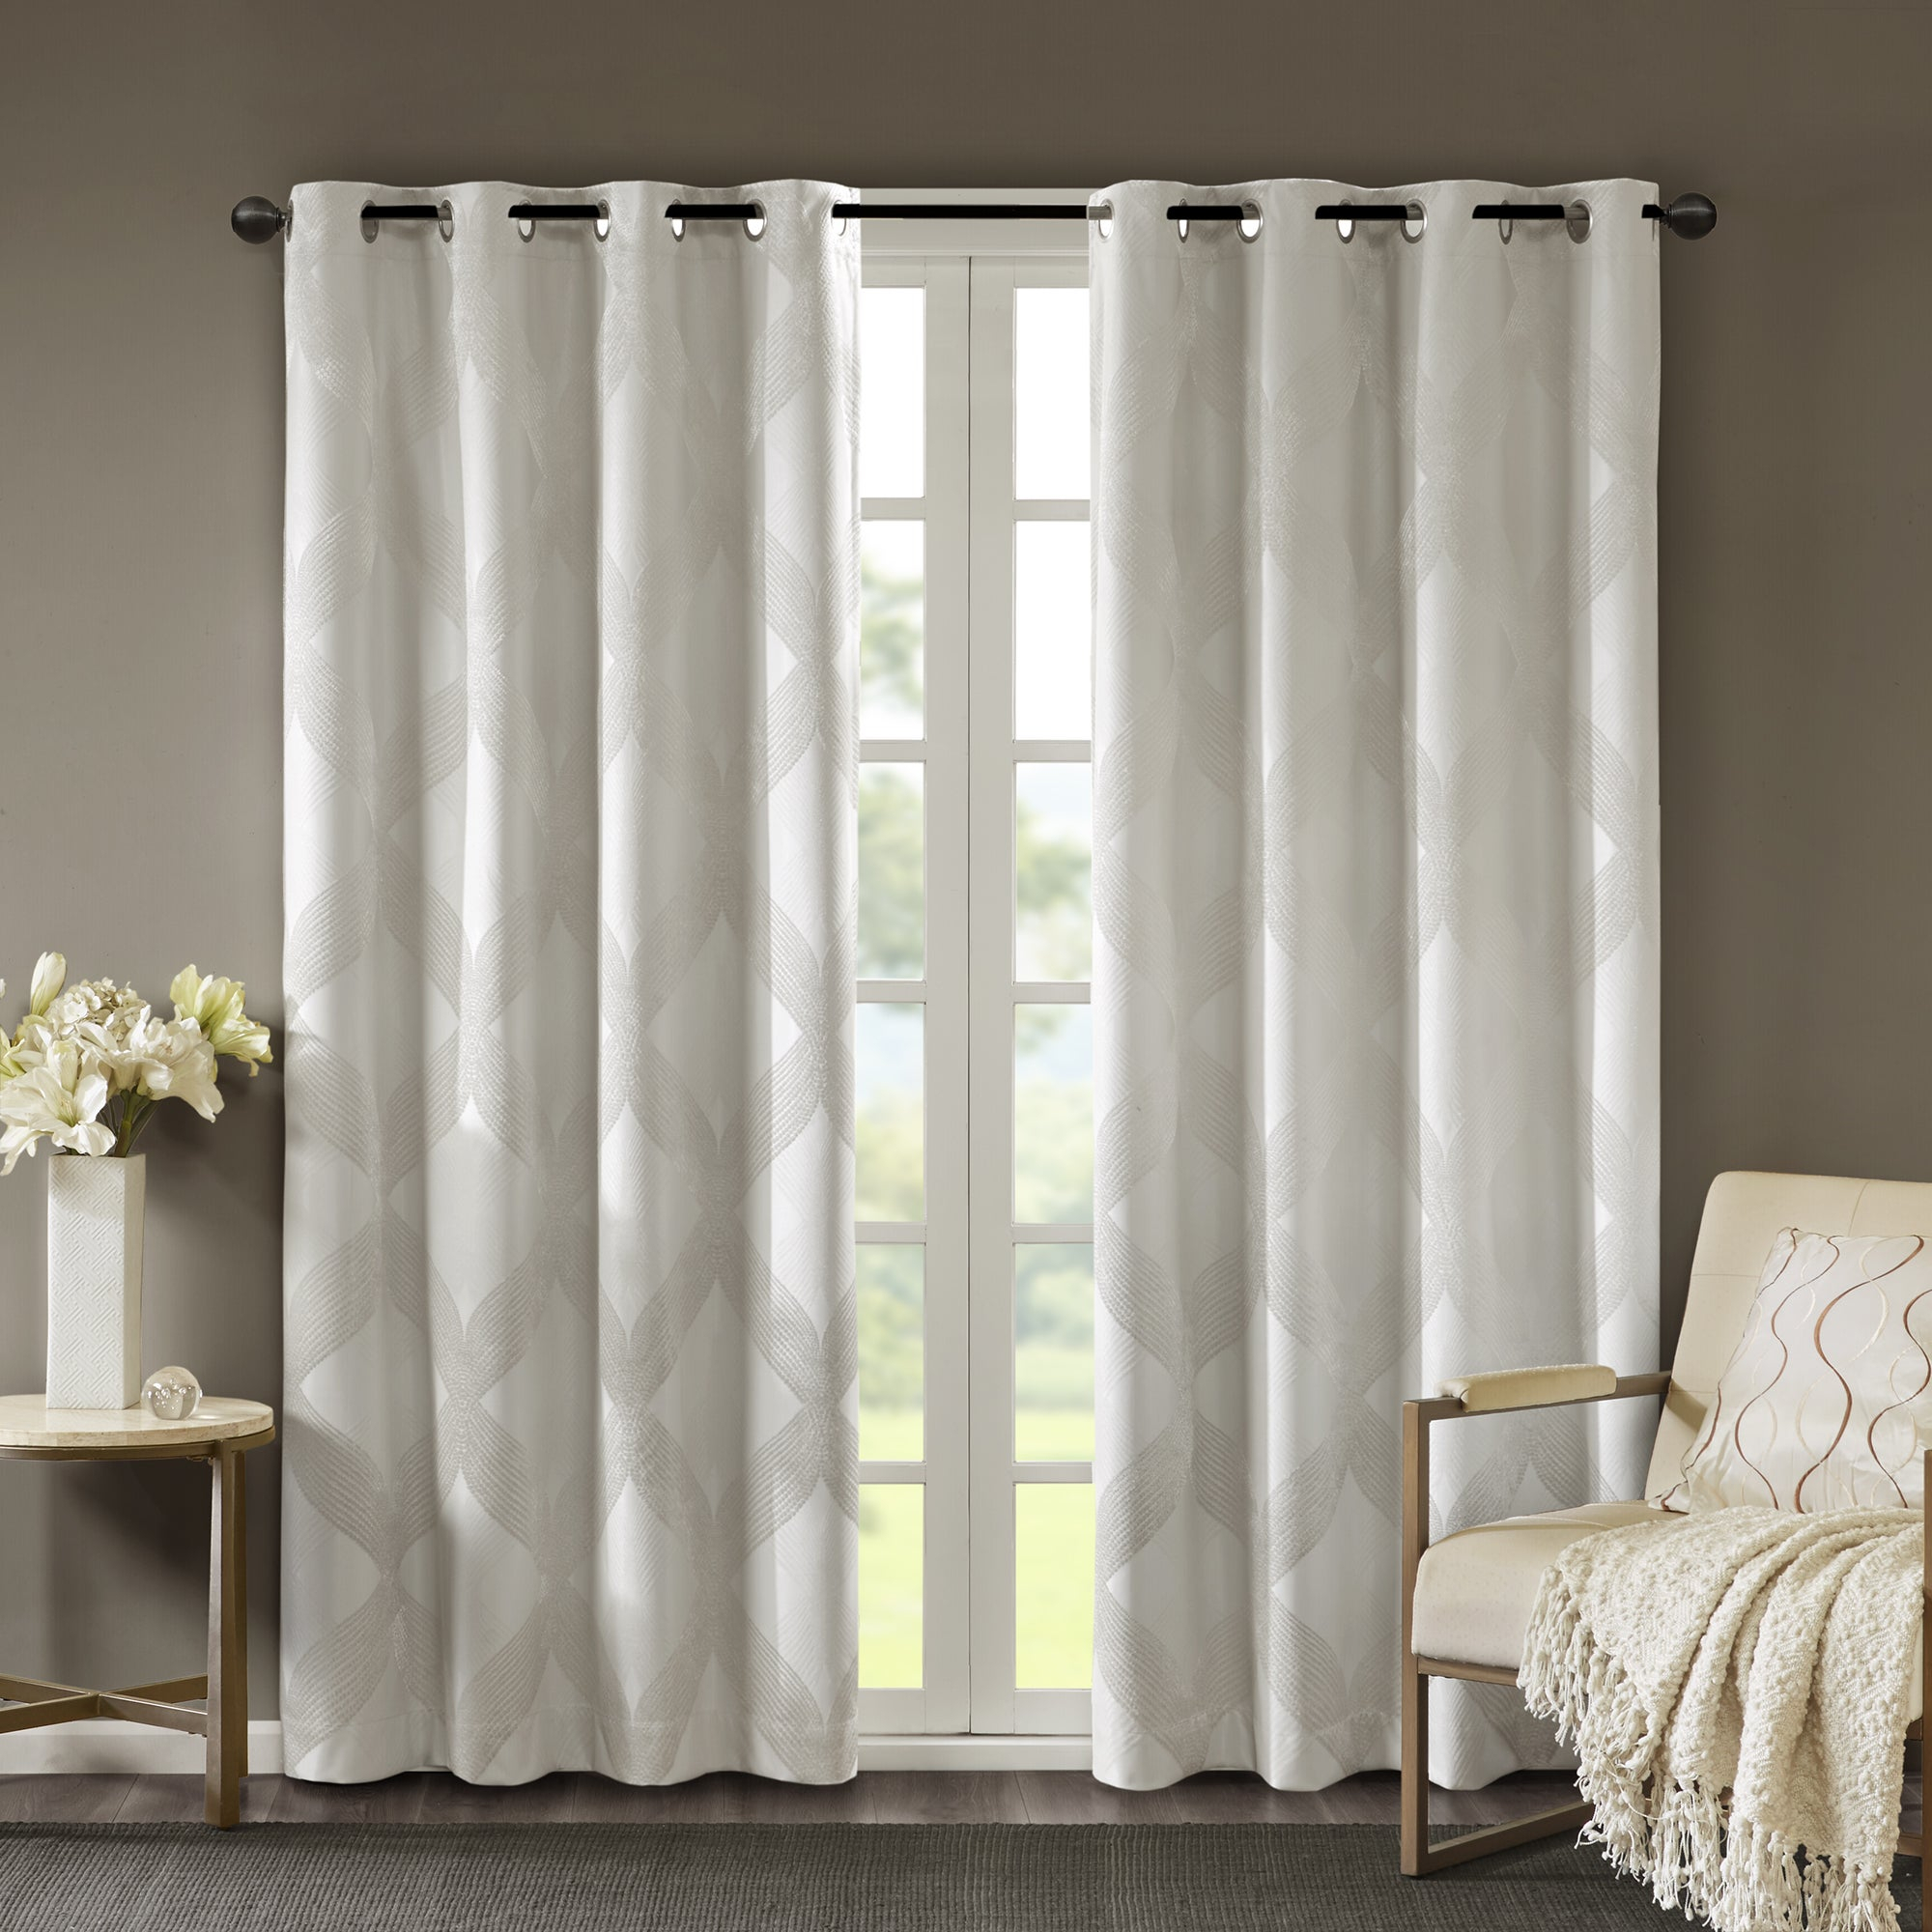 Featured Photo of Sunsmart Abel Ogee Knitted Jacquard Total Blackout Curtain Panels